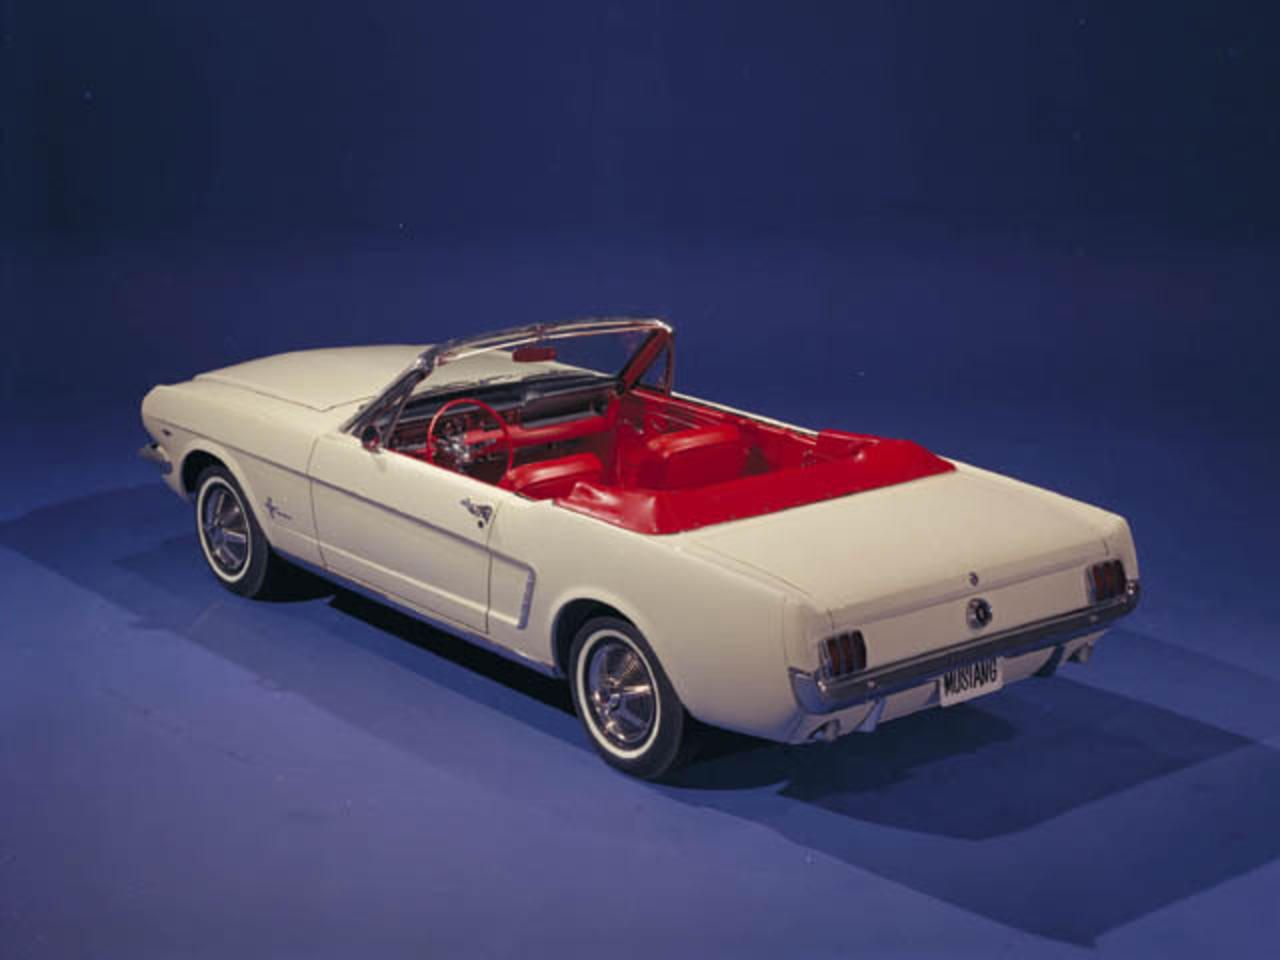 Ford Mustang Through The Years Mustang Convertible Ford Mustang 1965 Mustang Convertible